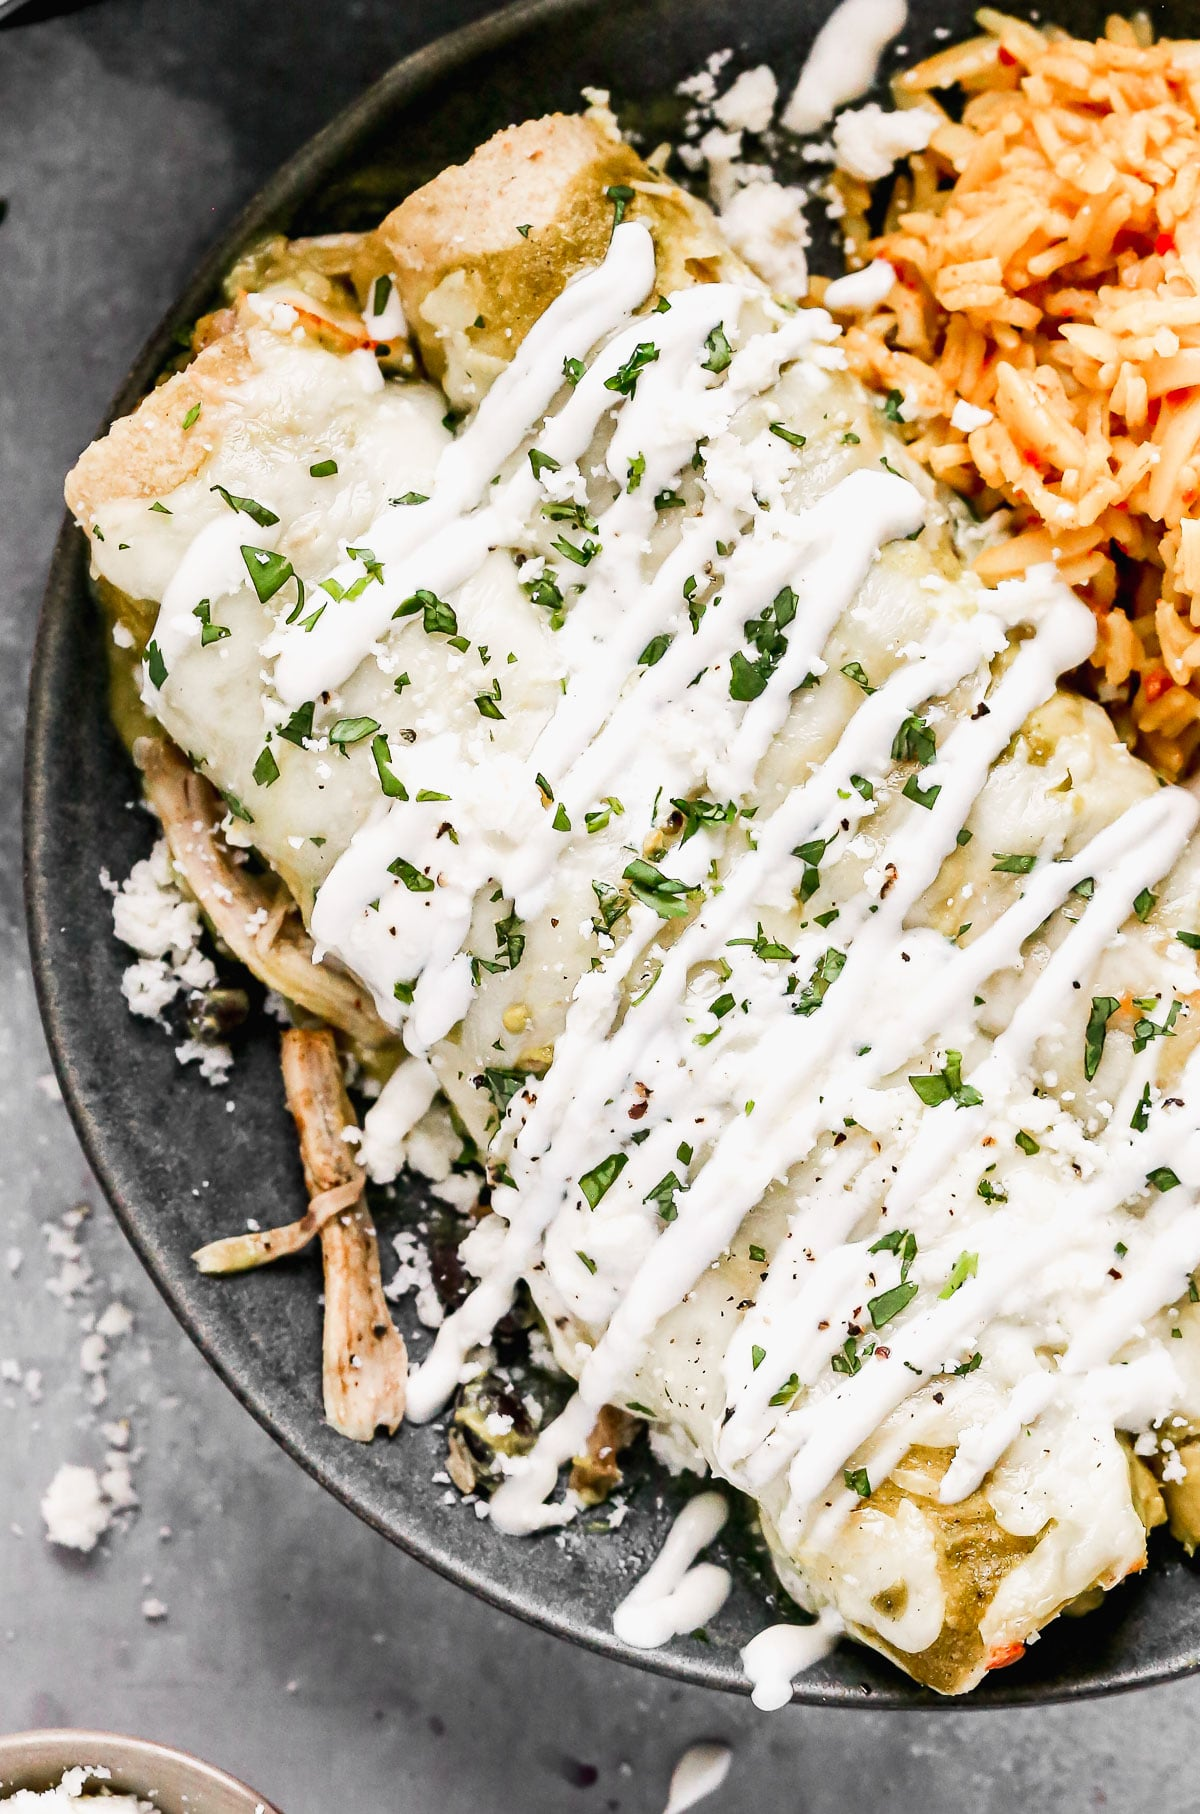 Bathed in homemade roasted salsa verde, stuffed with smoky shredded chicken and black beans, and smothered in melty monterrey jack cheese, these Enchiladas Verdes really hit the tex-mex spot. By roasting everything on one pan, these made-from-scratch enchiladas come together with a little bit less effort than your average homemade enchilada recipe. And do I even need to address how delicious they are?? So so good.